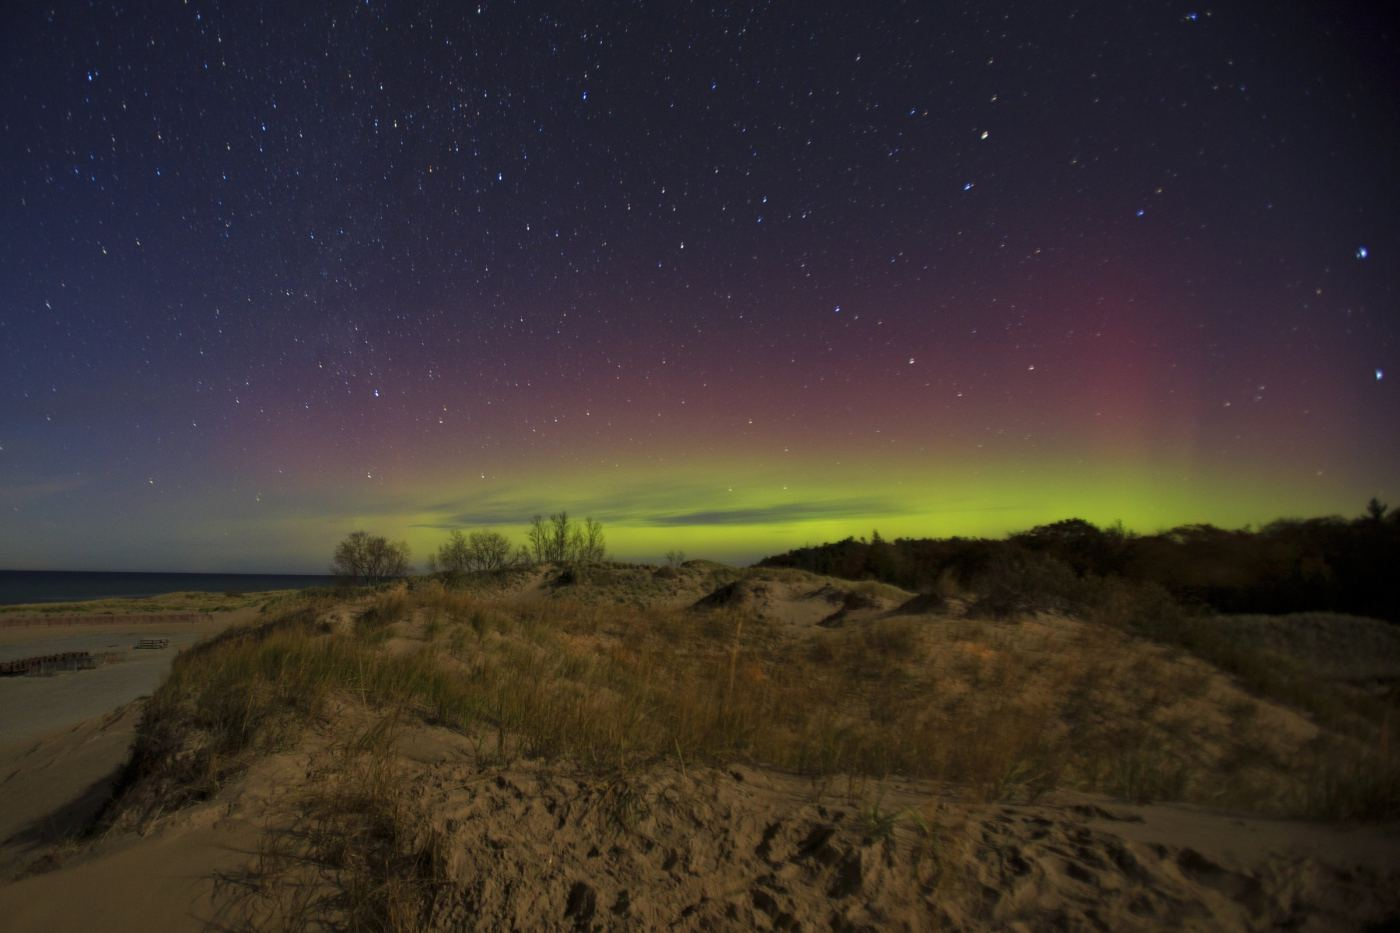 Northern lights seen in Ludington, MI